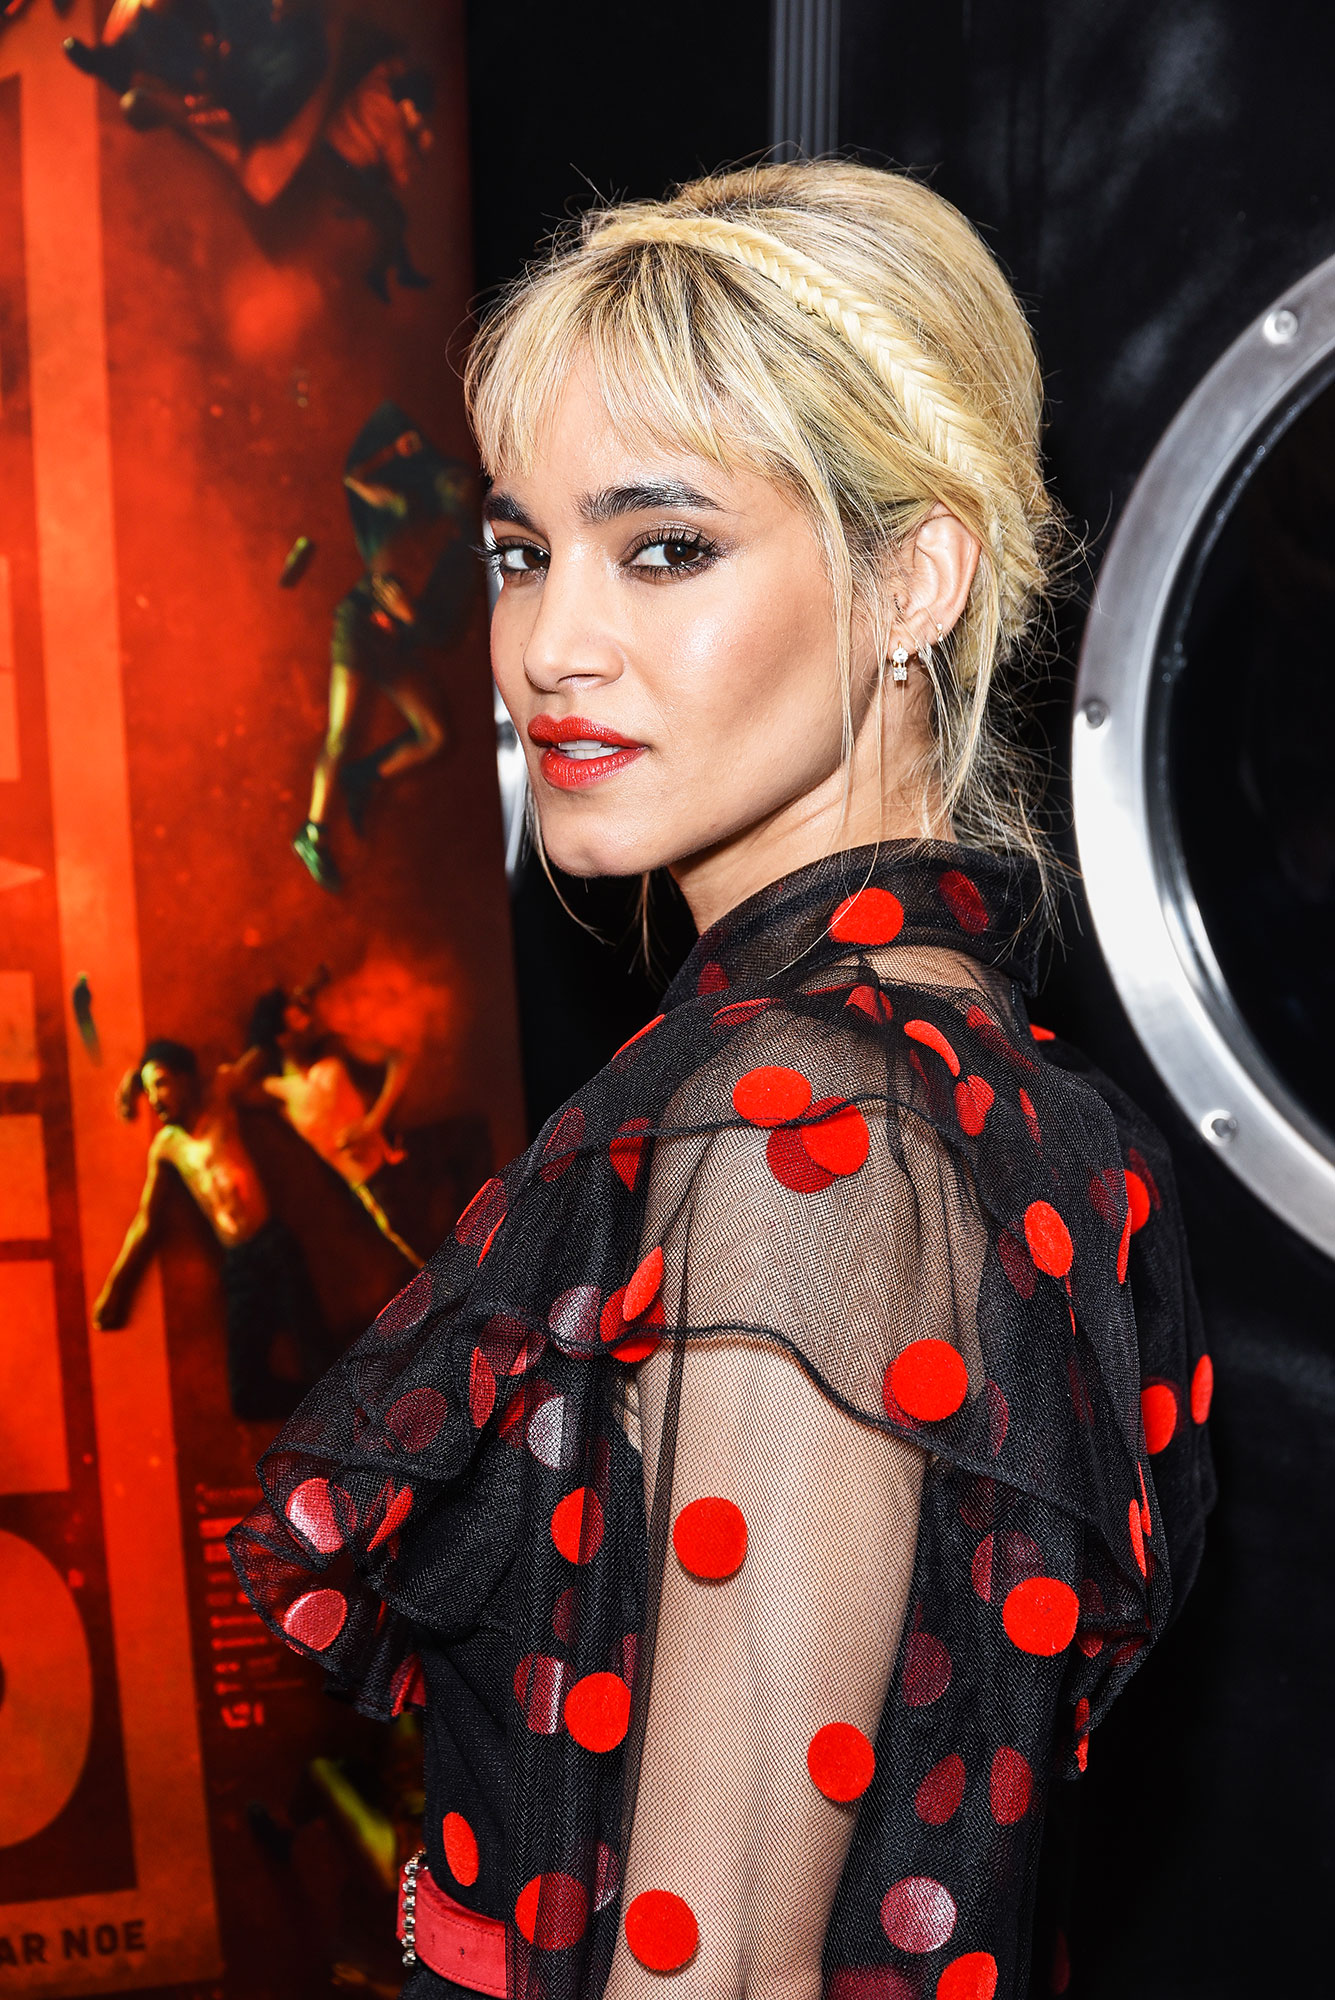 Sofia Boutella Celebs Are Here With All the Coachella Beauty Inspo You Need - The keys to the perfect music festival updo? Platinum blonde color, choppy bangs and a surprise fishtail, as mane man Adir Abergel proved with the edgy look he created for the actress at a screening in L.A. in February.